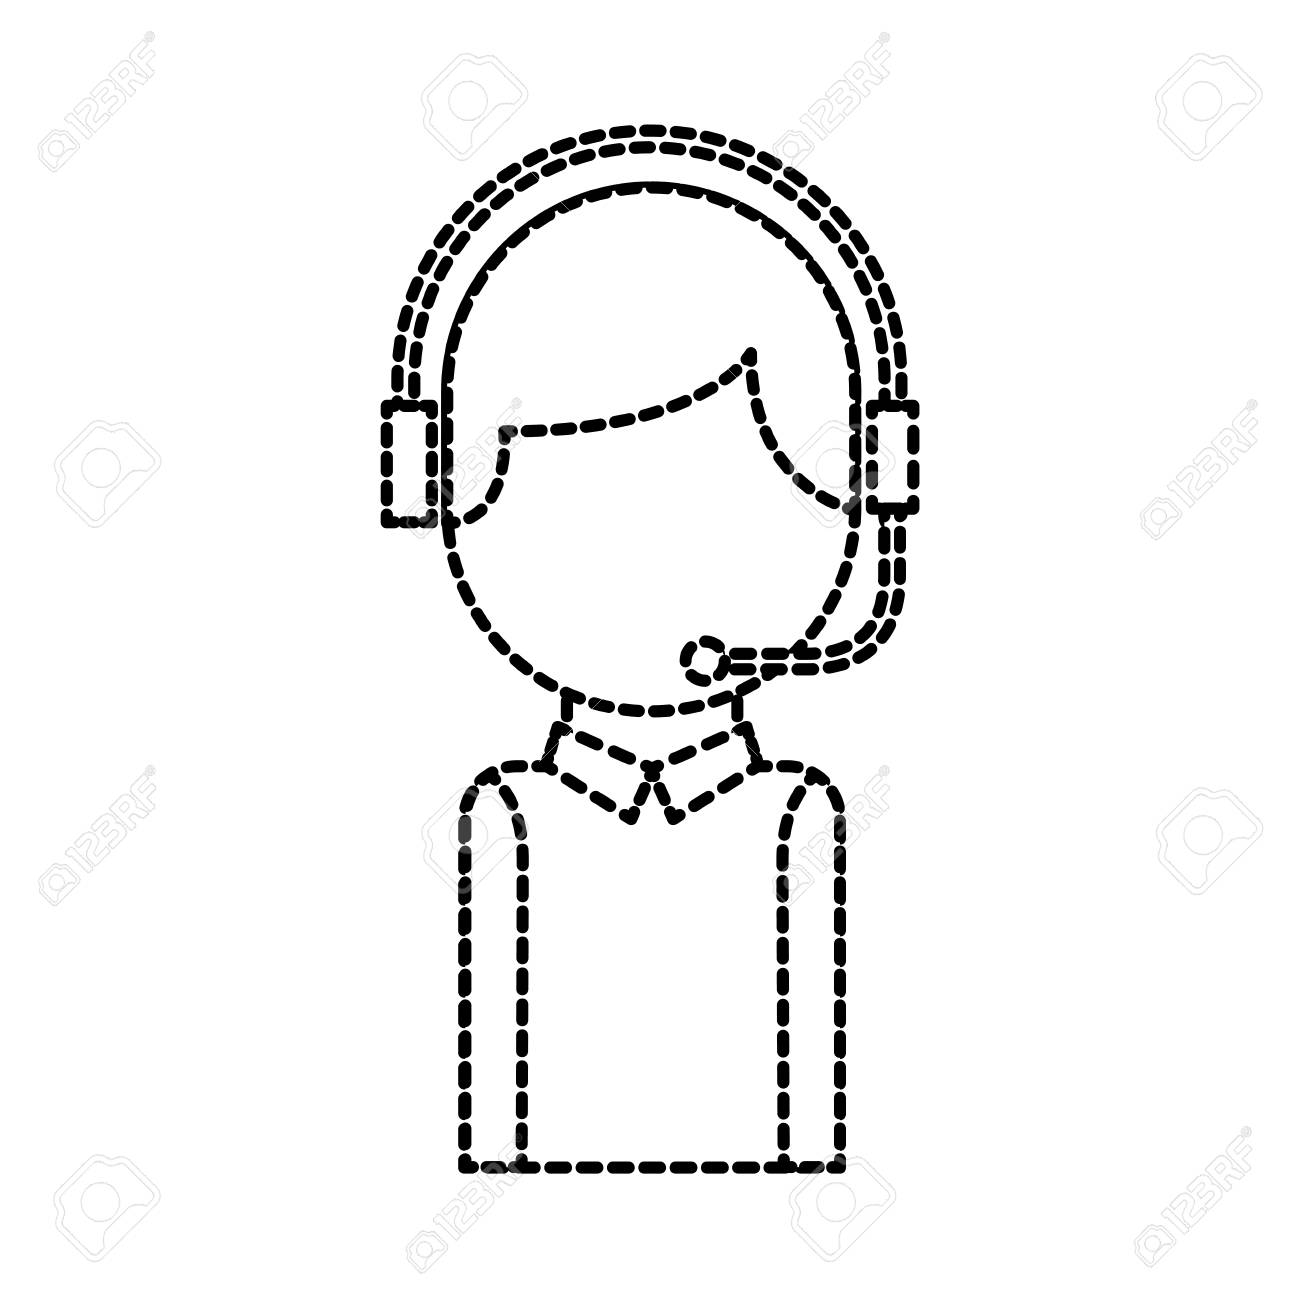 Call Center Operator With Phone Headset Vector Illustration Royalty Free Cliparts Vectors And Stock Illustration Image 86641867